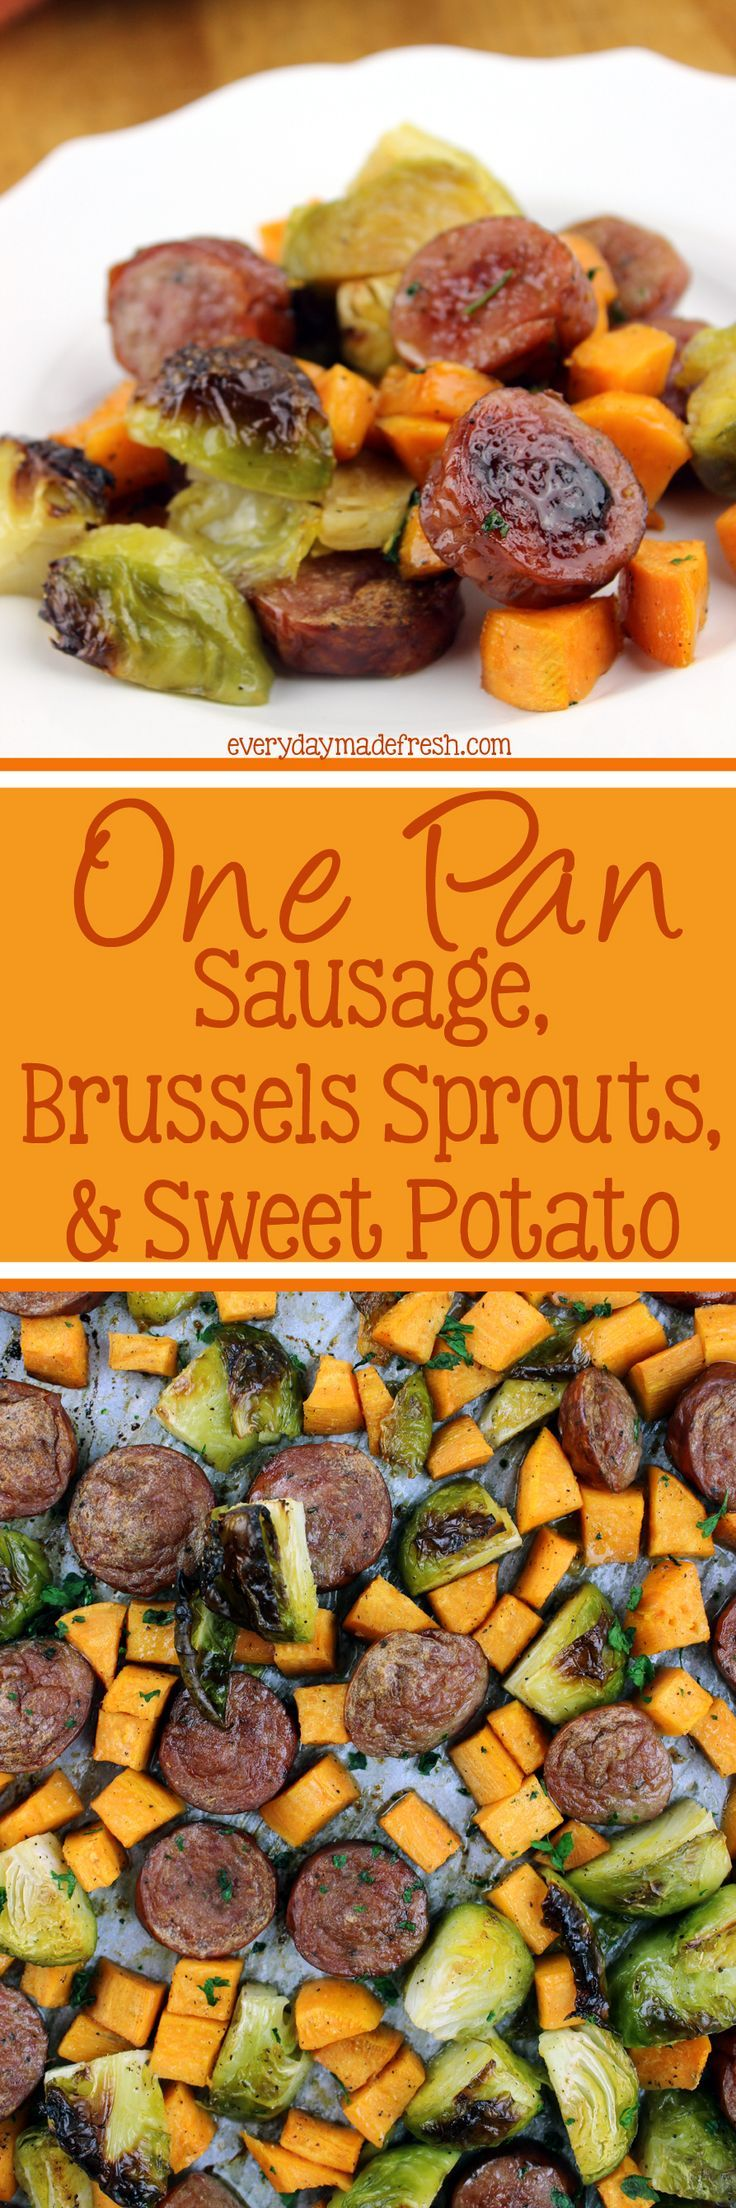 Nothing beats this quick and easy One Pan Sausage, Brussels Sprouts, & Sweet Potato. This tasty recipe leaves you with virtually no clean-up; perfect for any night! | EverydayMadeFresh.com http://www.everydaymadefresh.com/one-pan-sausage-brussels-sprouts-sweet-potato/